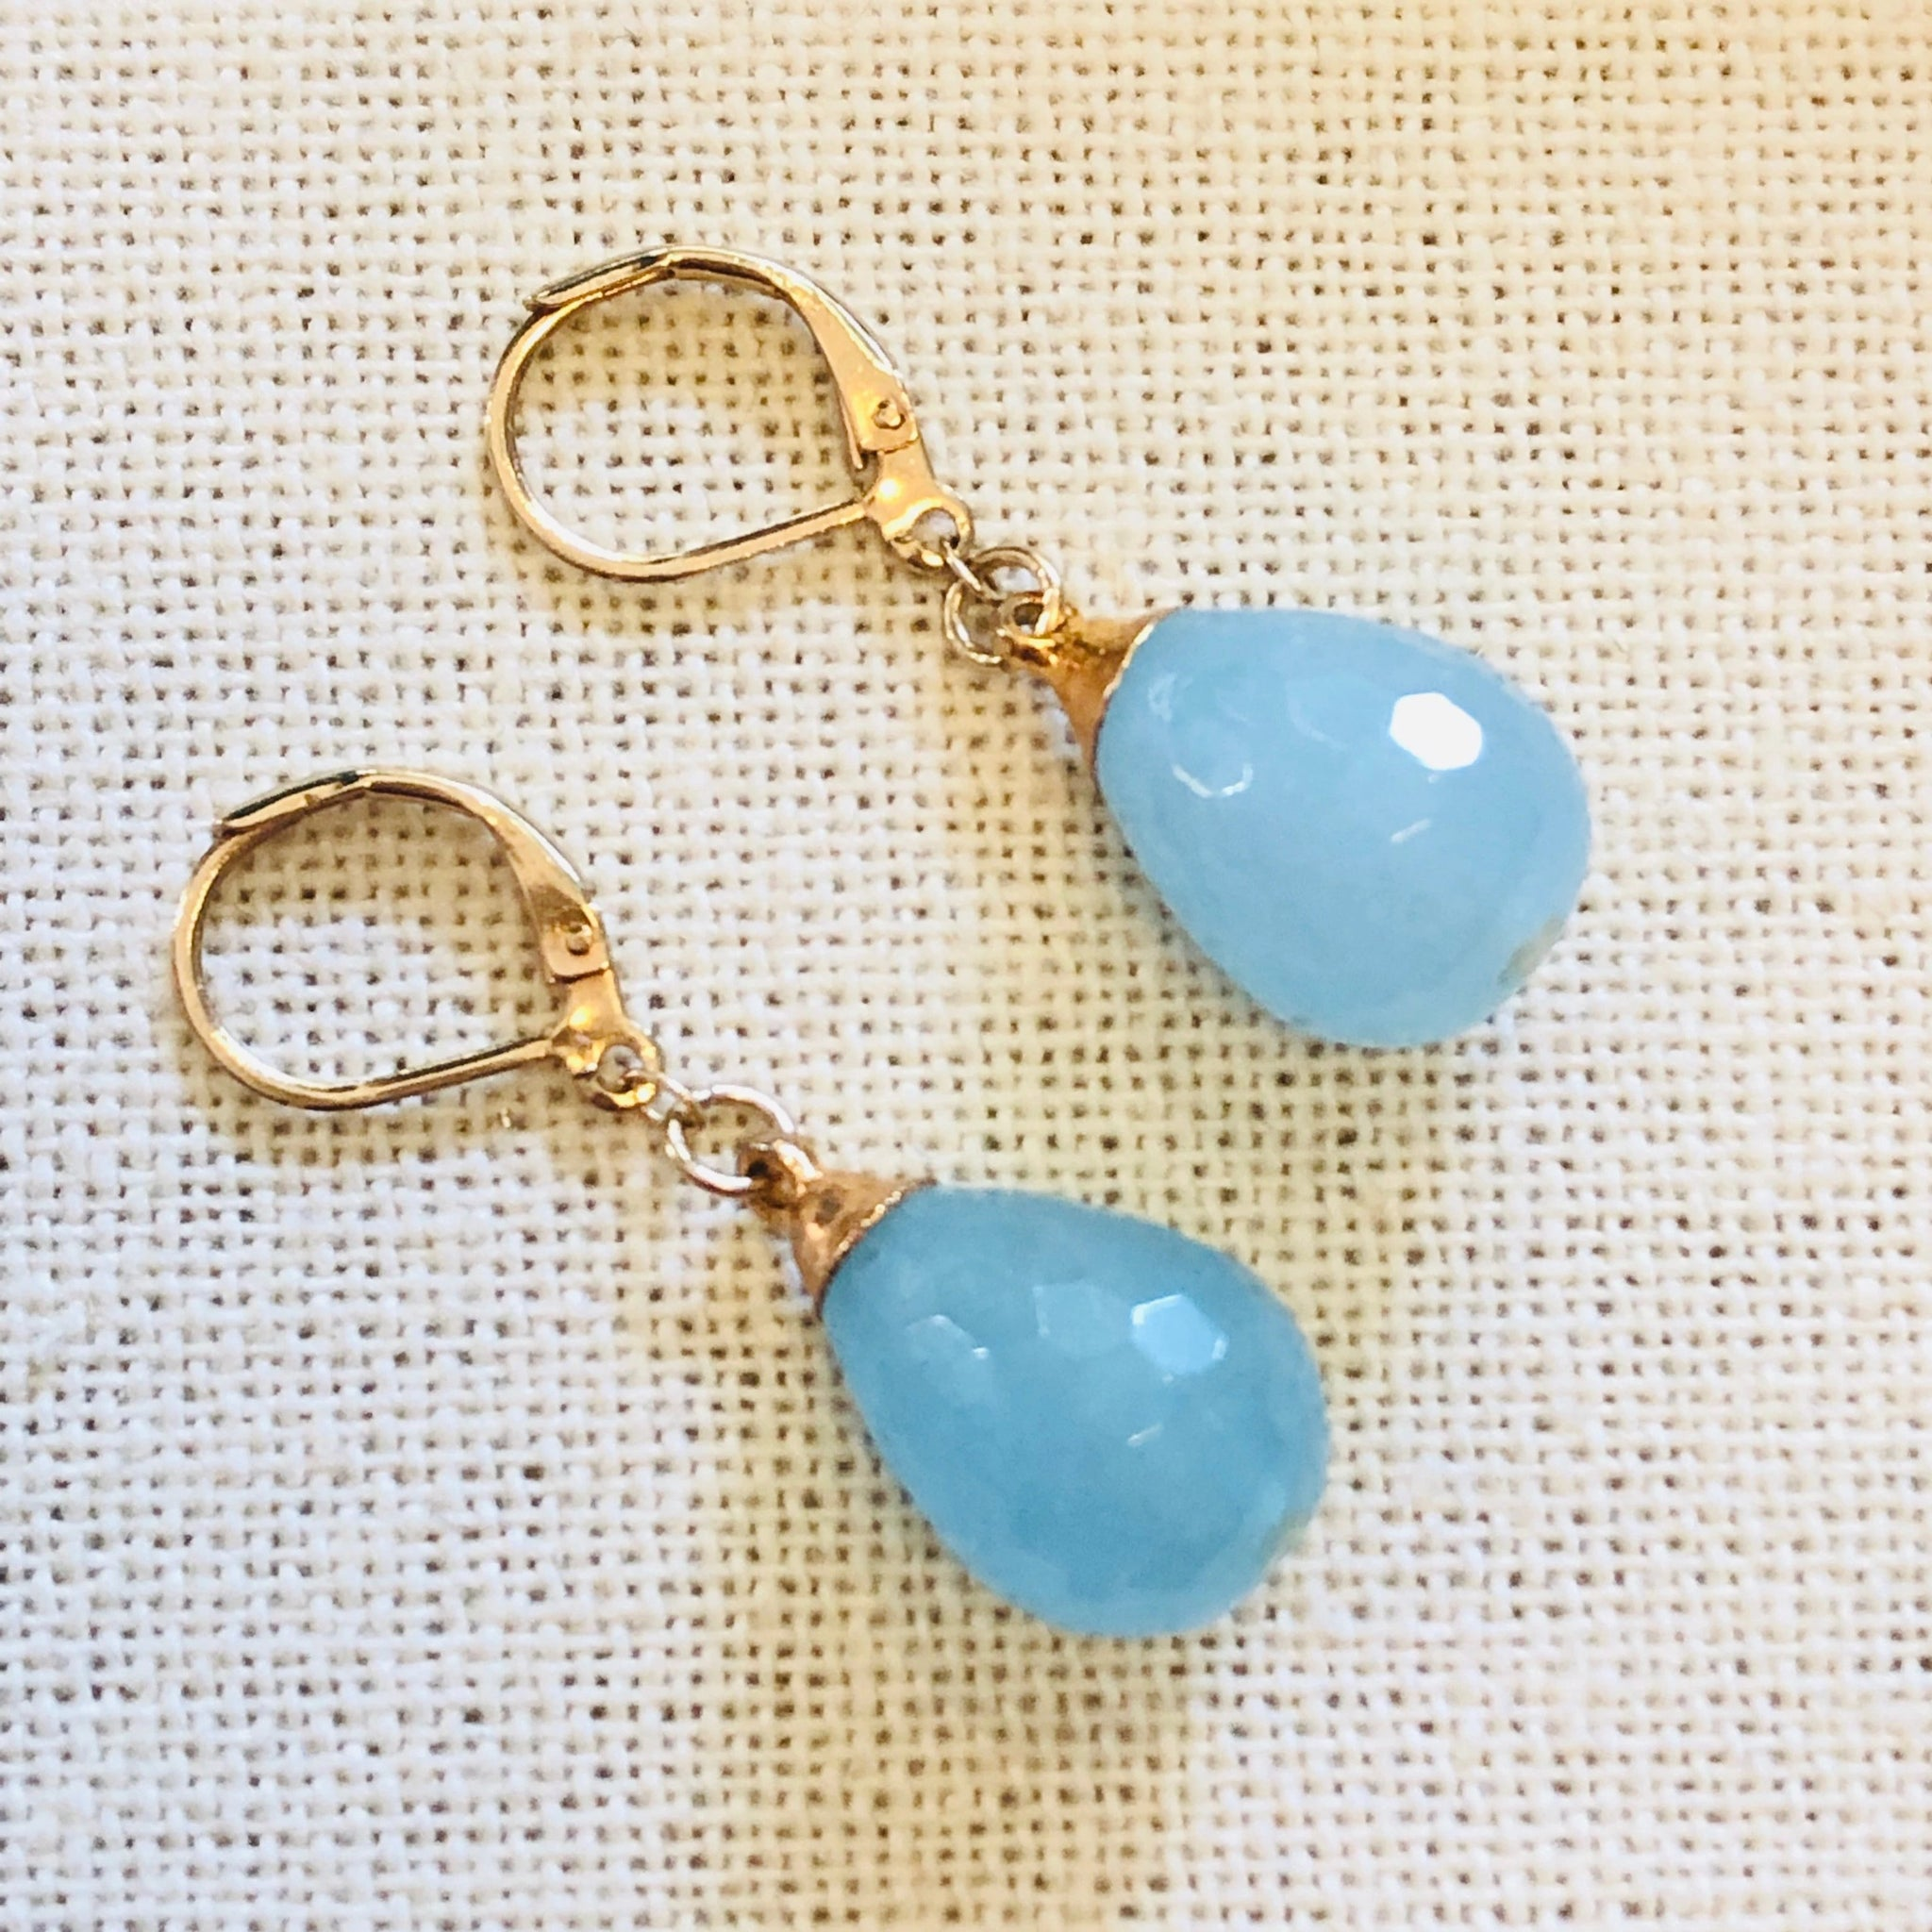 Aqua Marine Tier Drop Gold Earrings by Sage Machado - The Sage Lifestyle